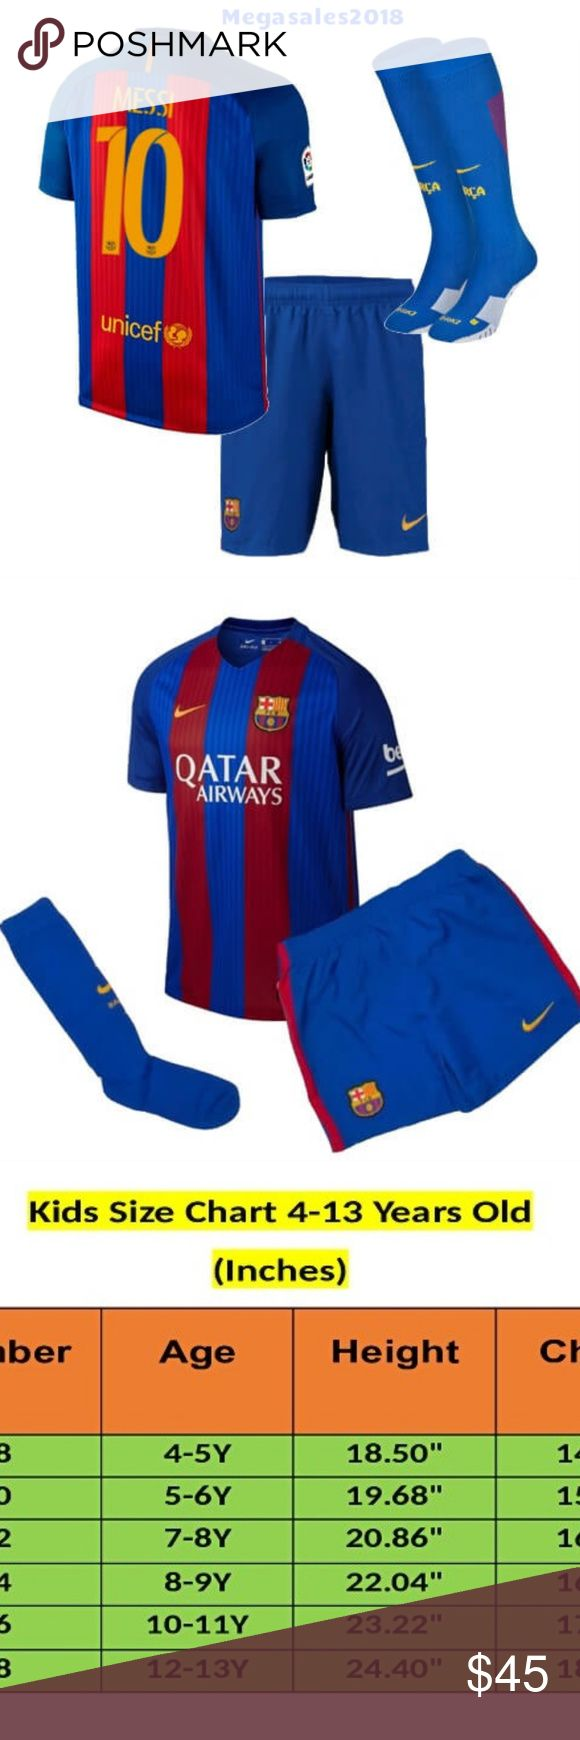 Messi Barcelona Home  Kids WITH SOCKS  /2016-17 Messi Barcelona Home Kids WITH SOCKS  /2016-17  Brand New With Tags     Worn during 2016-17 season     Suitable for Kids - Available in Multiple Sizes     Money-back Satisfaction Guarantee  **** DELIVERY  TIME 5-7 DAYS ****** Other